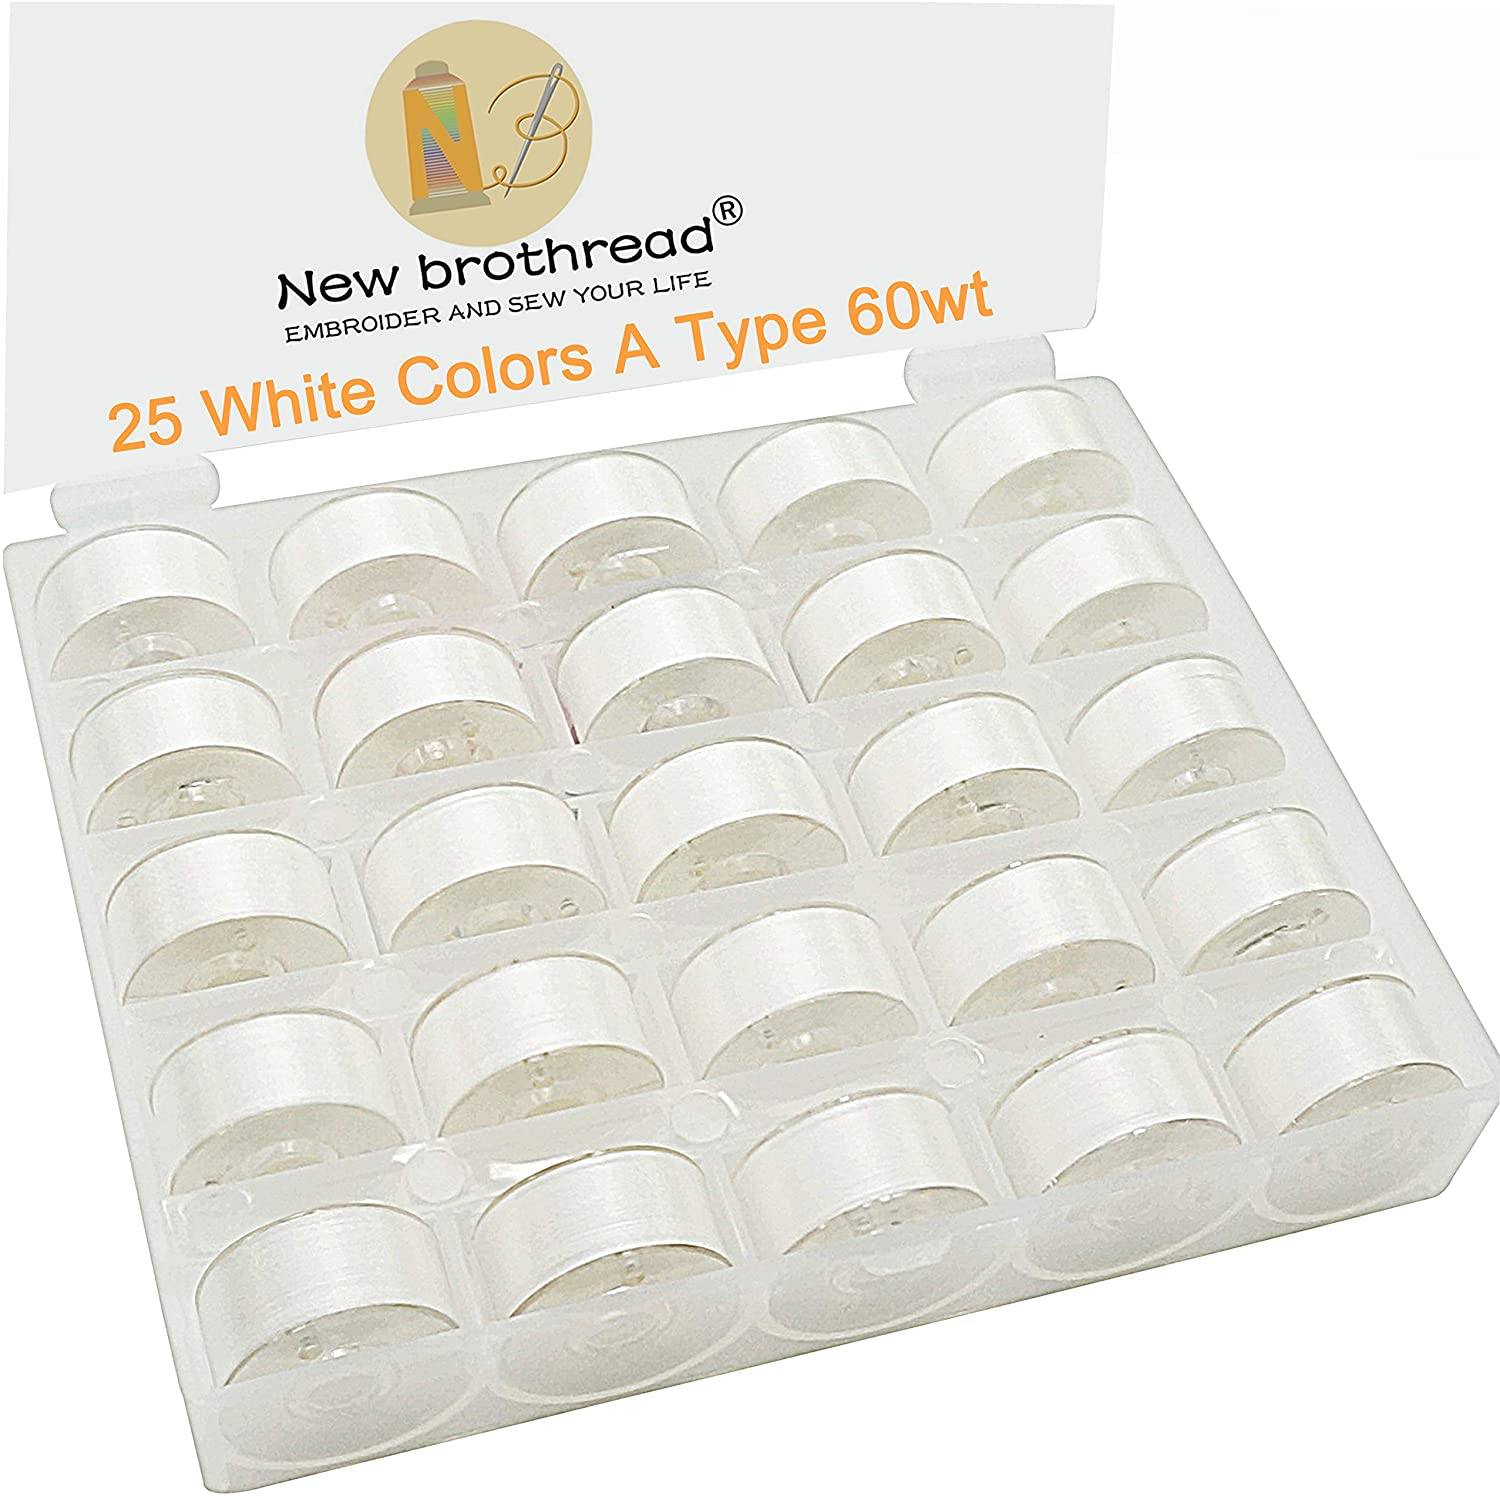 New brothread Prewound Bobbin Thread Plastic Size A SA156 for Embroidery and Sewing Machines